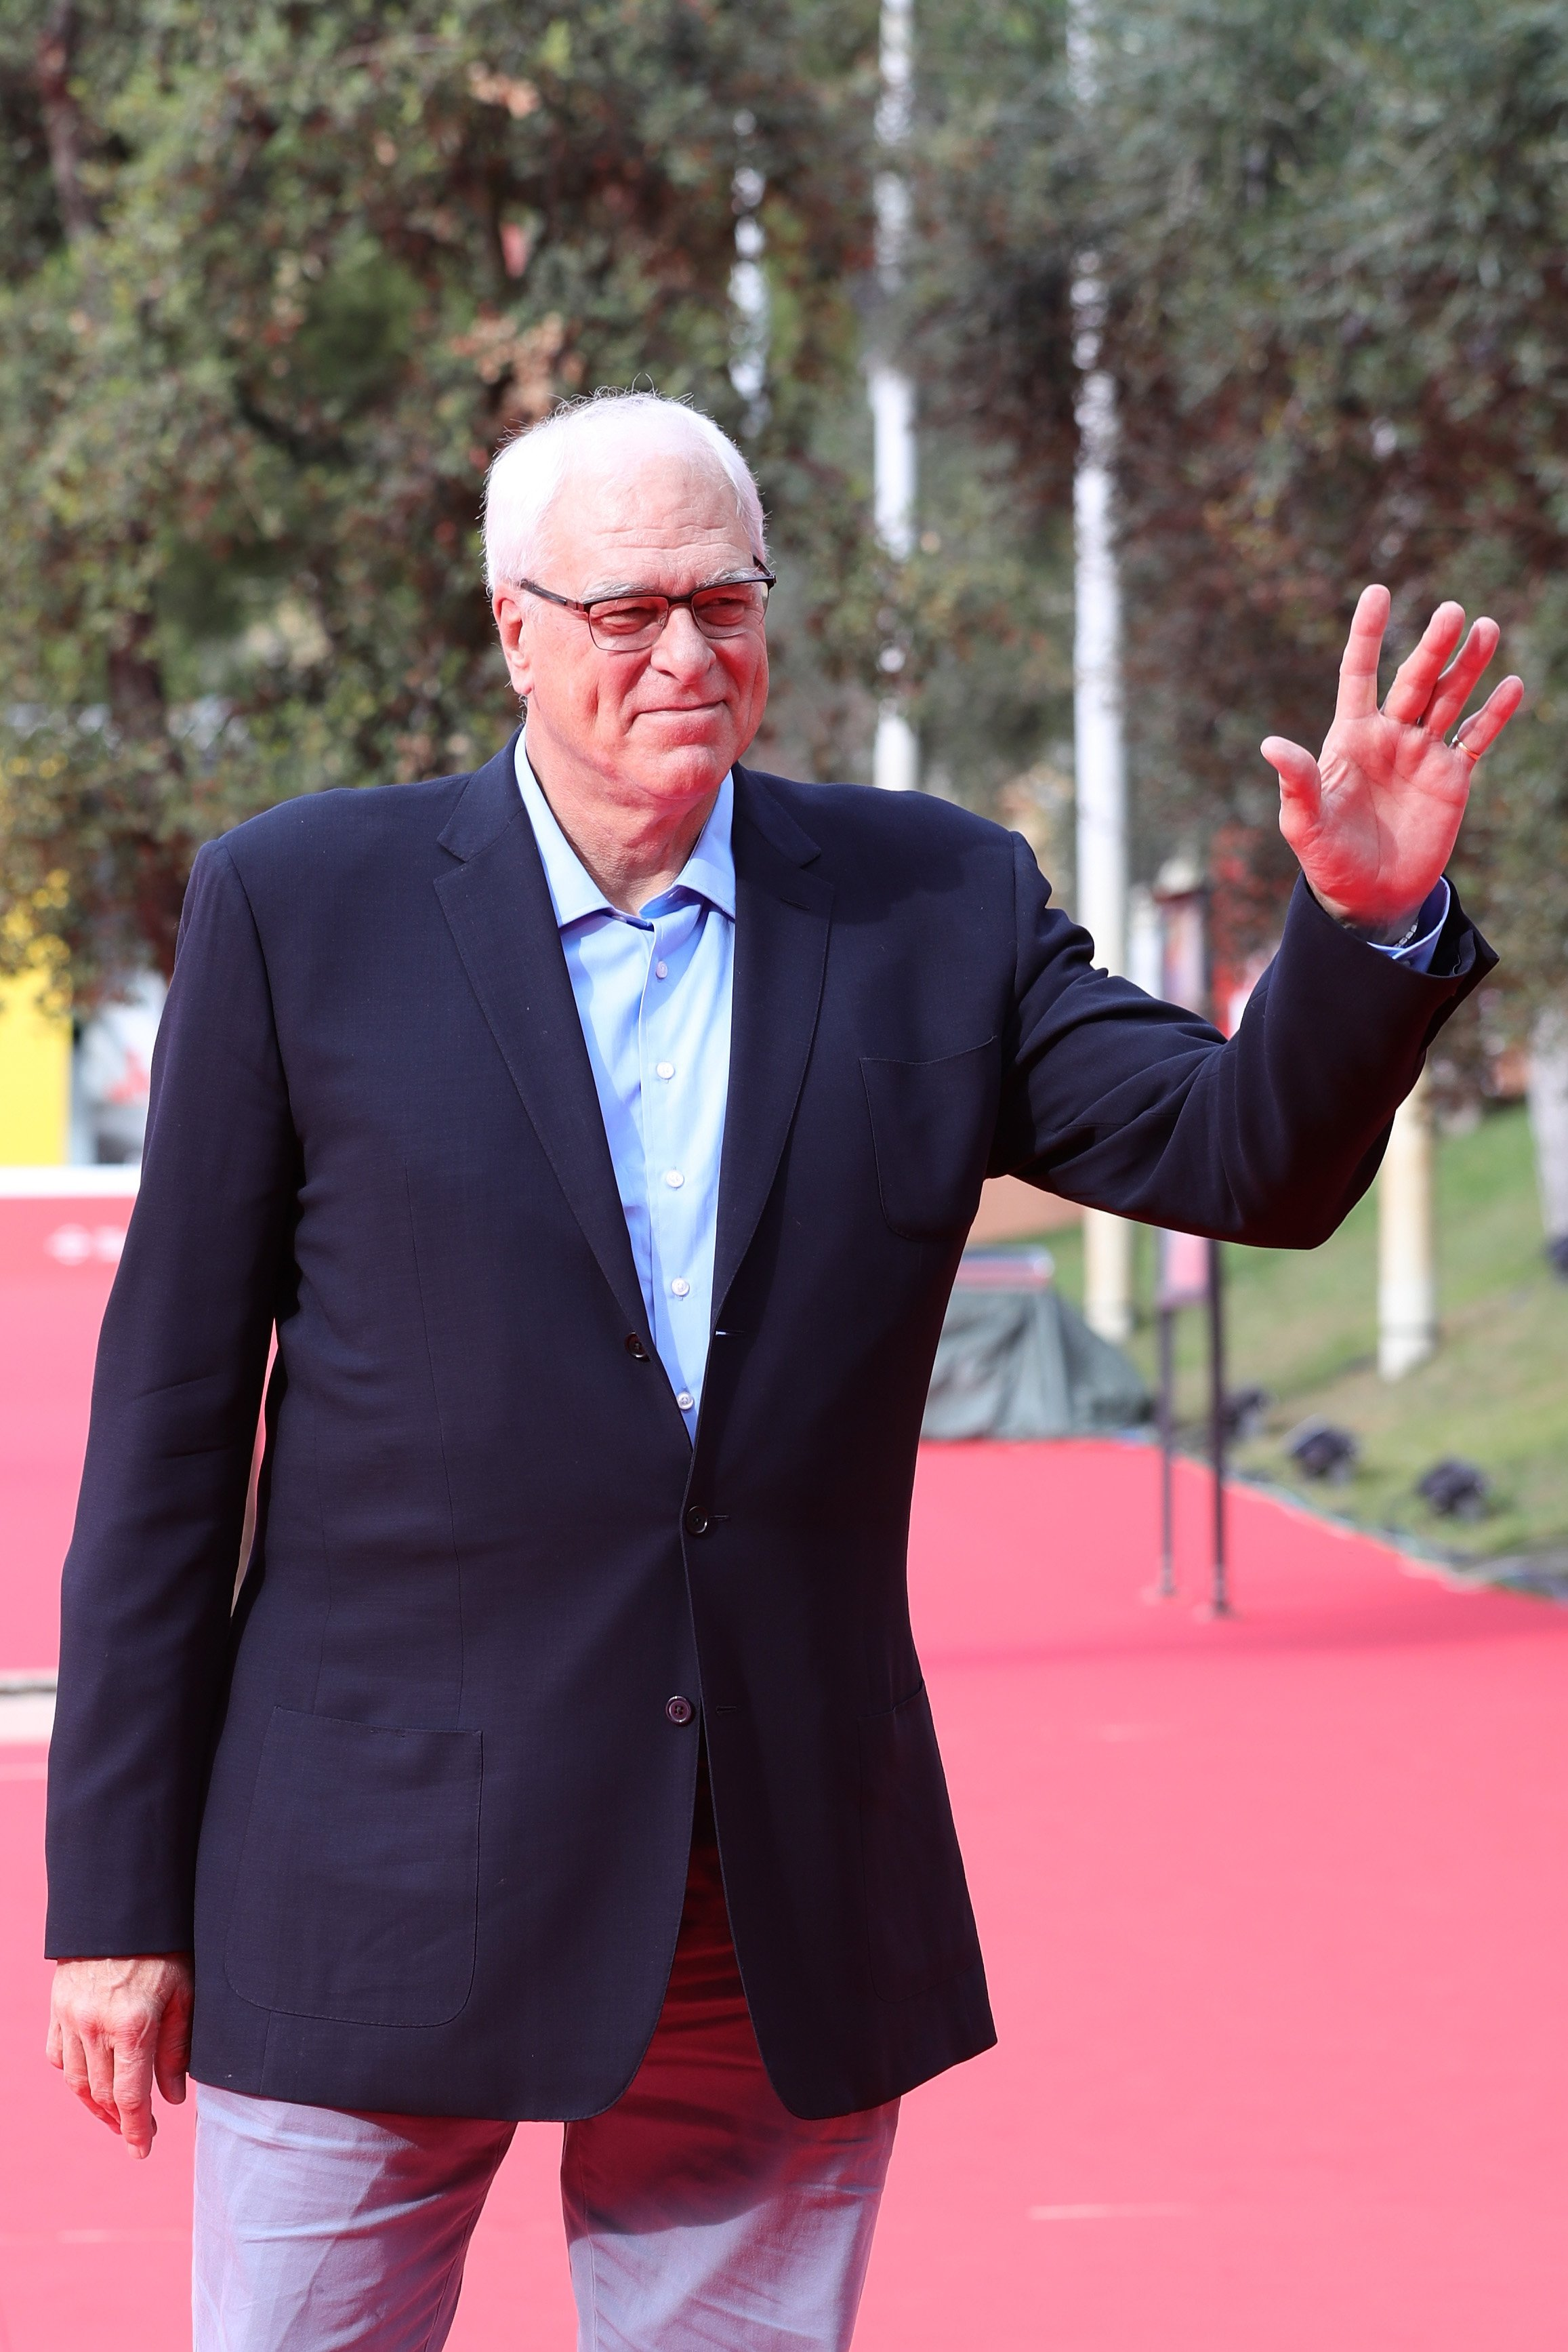 Phil Jackson walks a red carpet during the 12th Rome Film Fest at Auditorium Parco Della Musica on October 28, 2017 | Photo: Getty Images